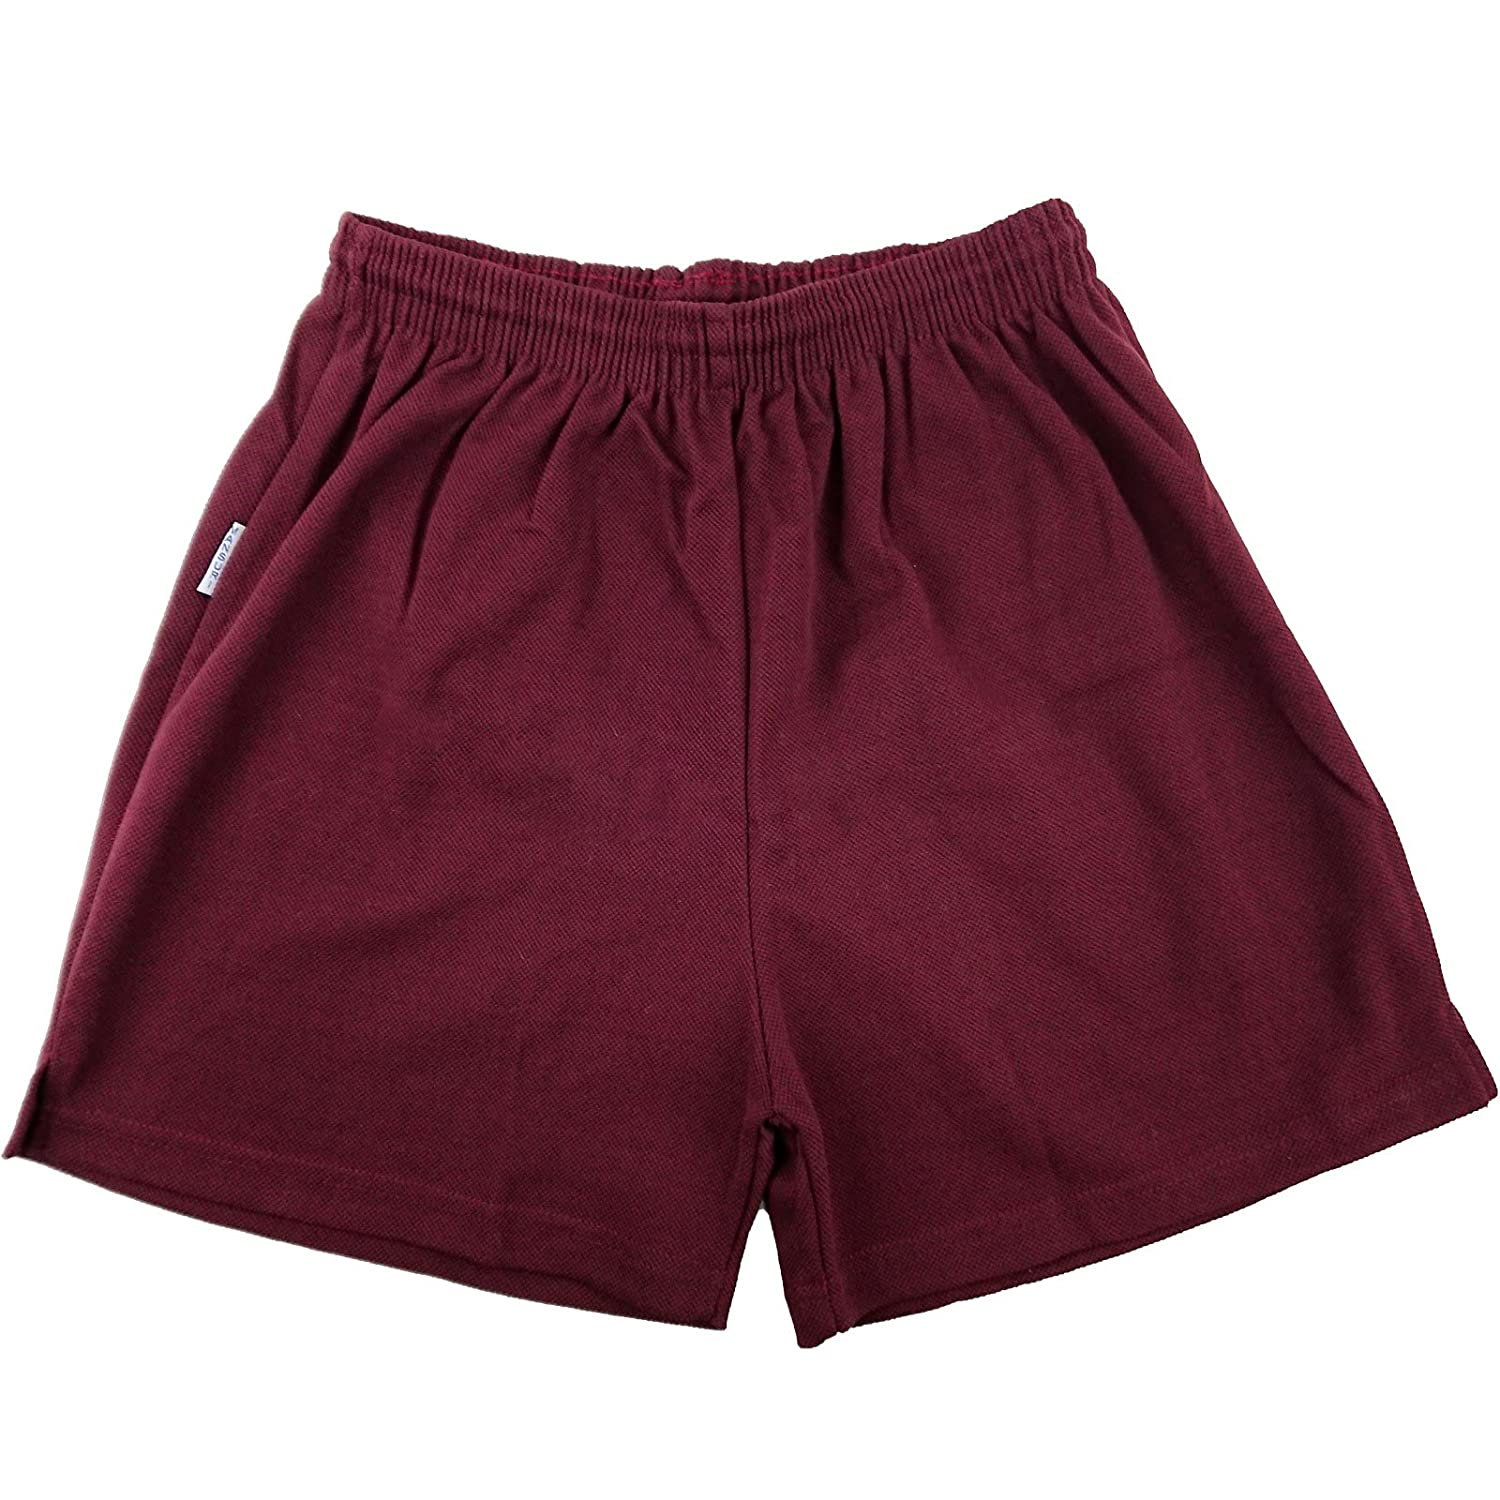 Mens Boys Girls Unisex Mesh Shorts Gym Shorts Sports Football Games PE Shorts School PE Shorts Maroon